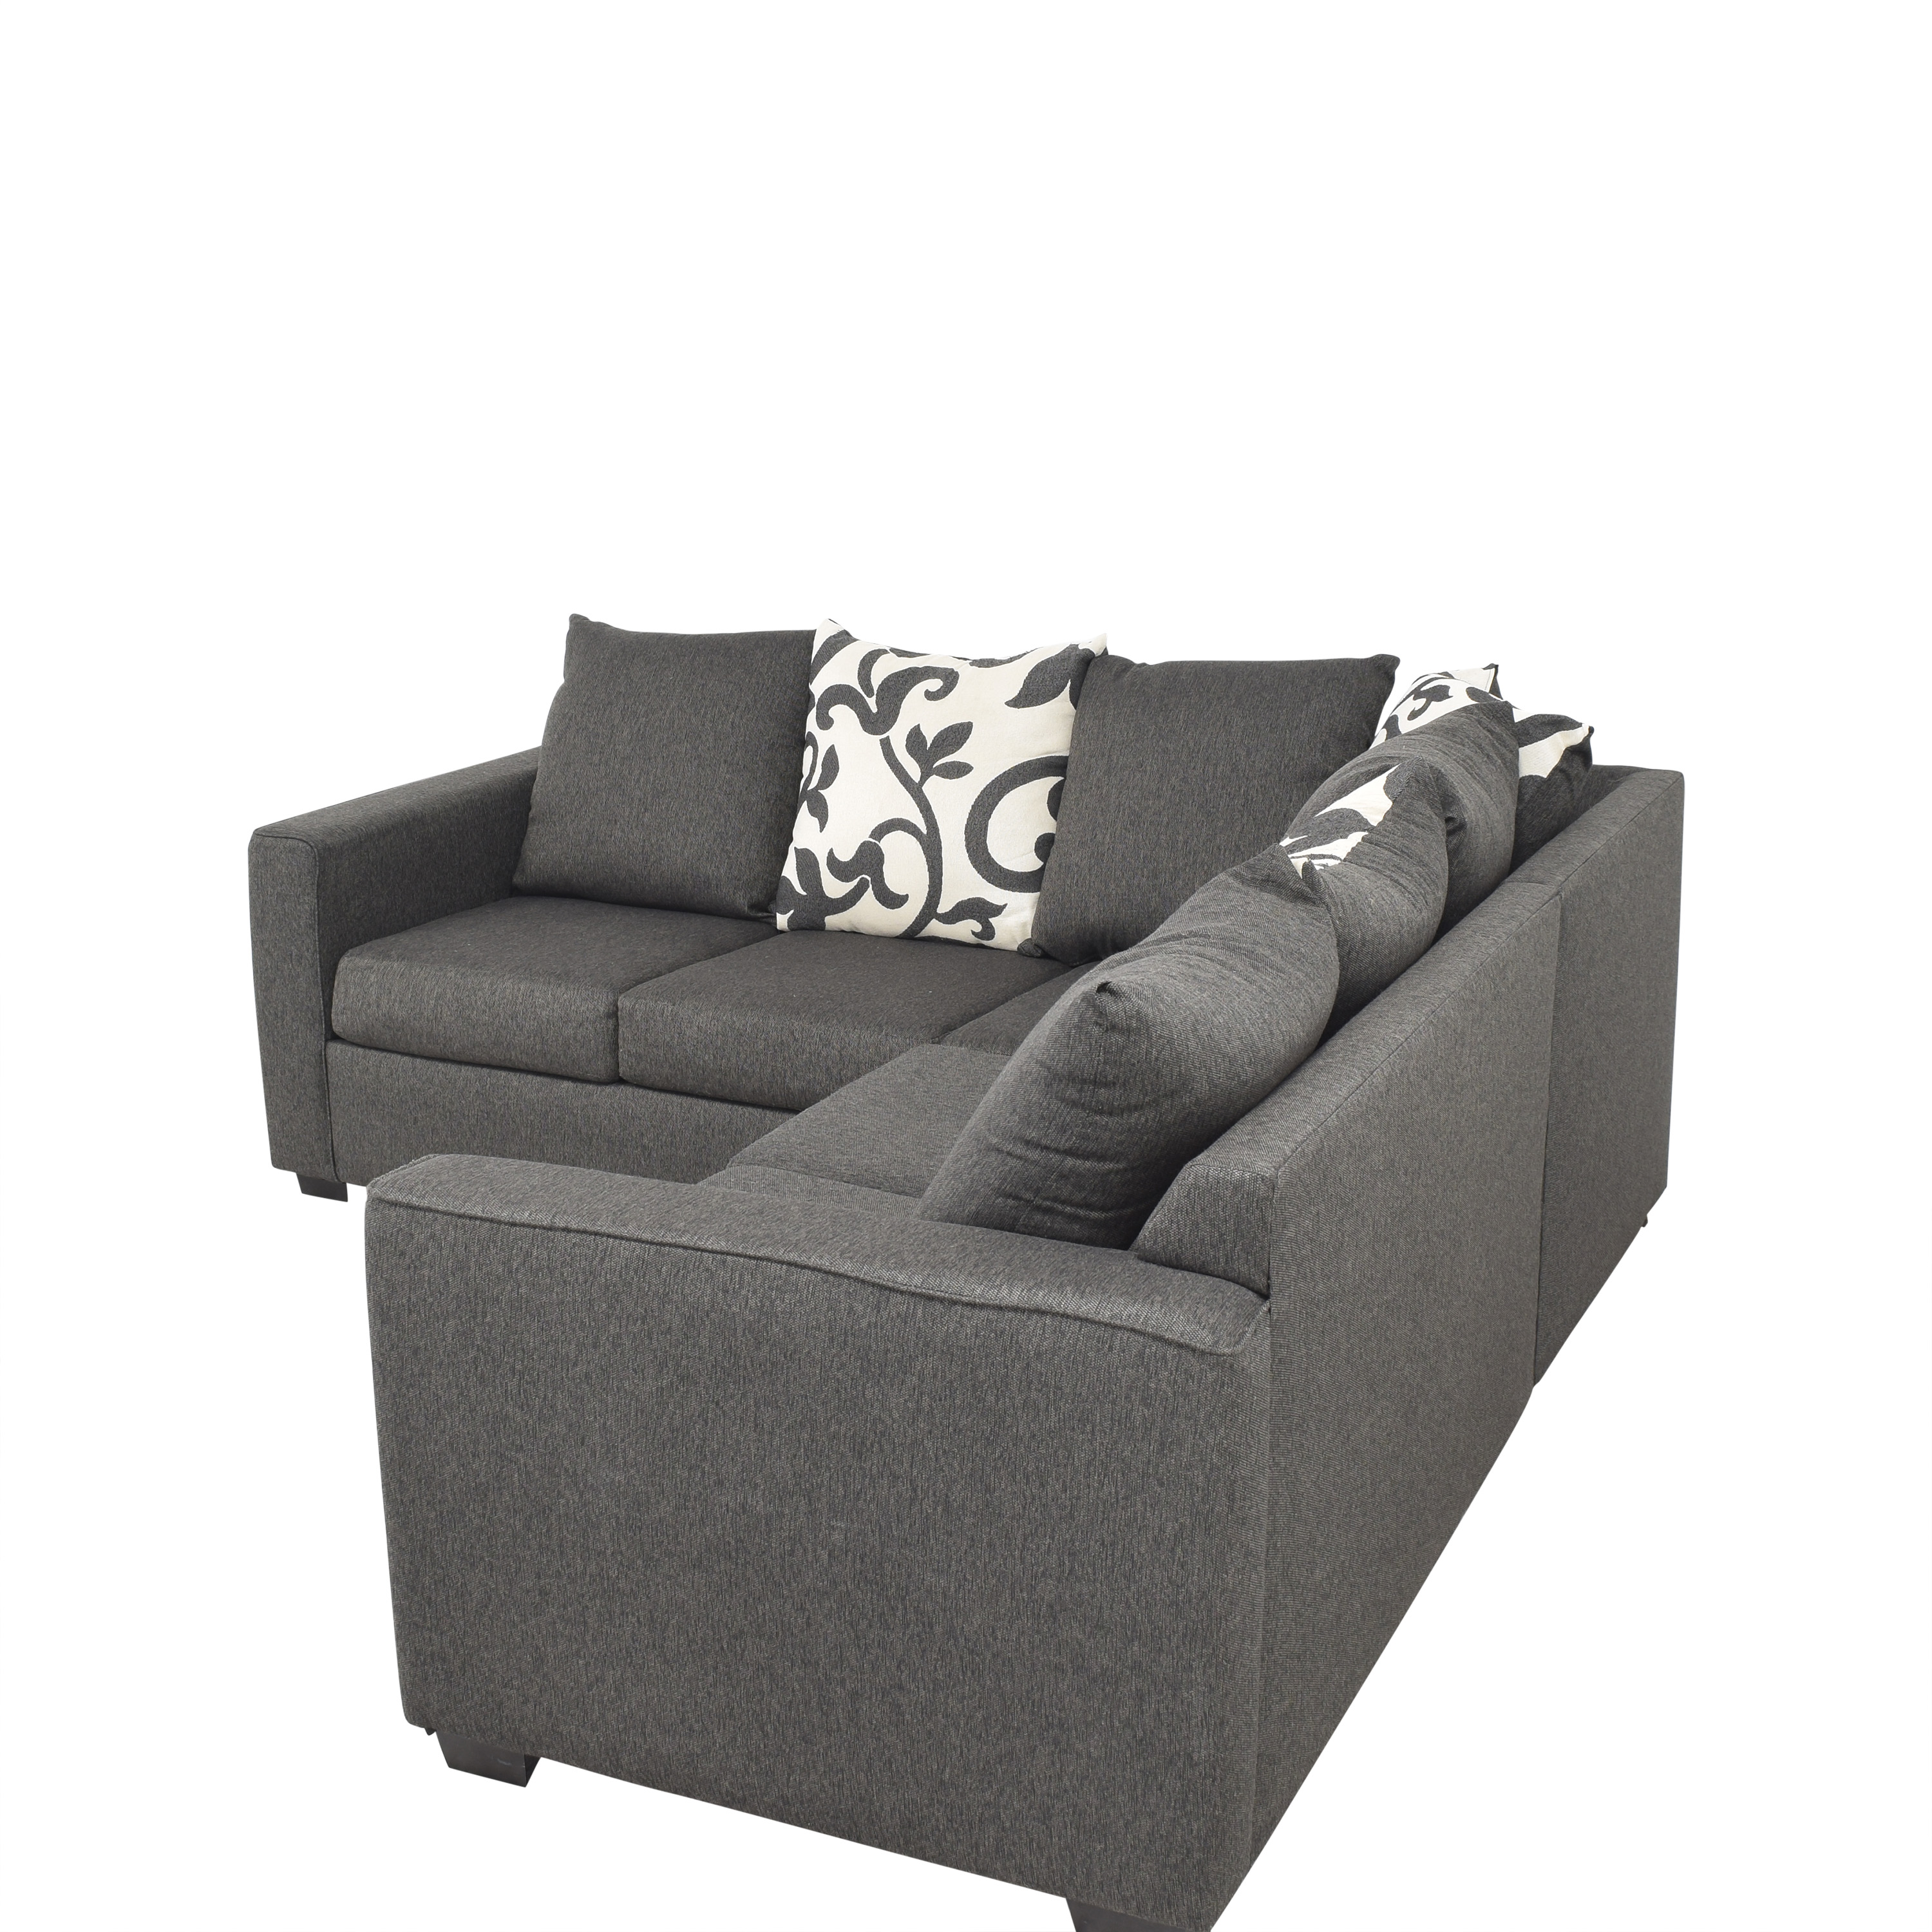 Furniture of America Furniture of America Lleida Two Piece Sectional Sofa ma